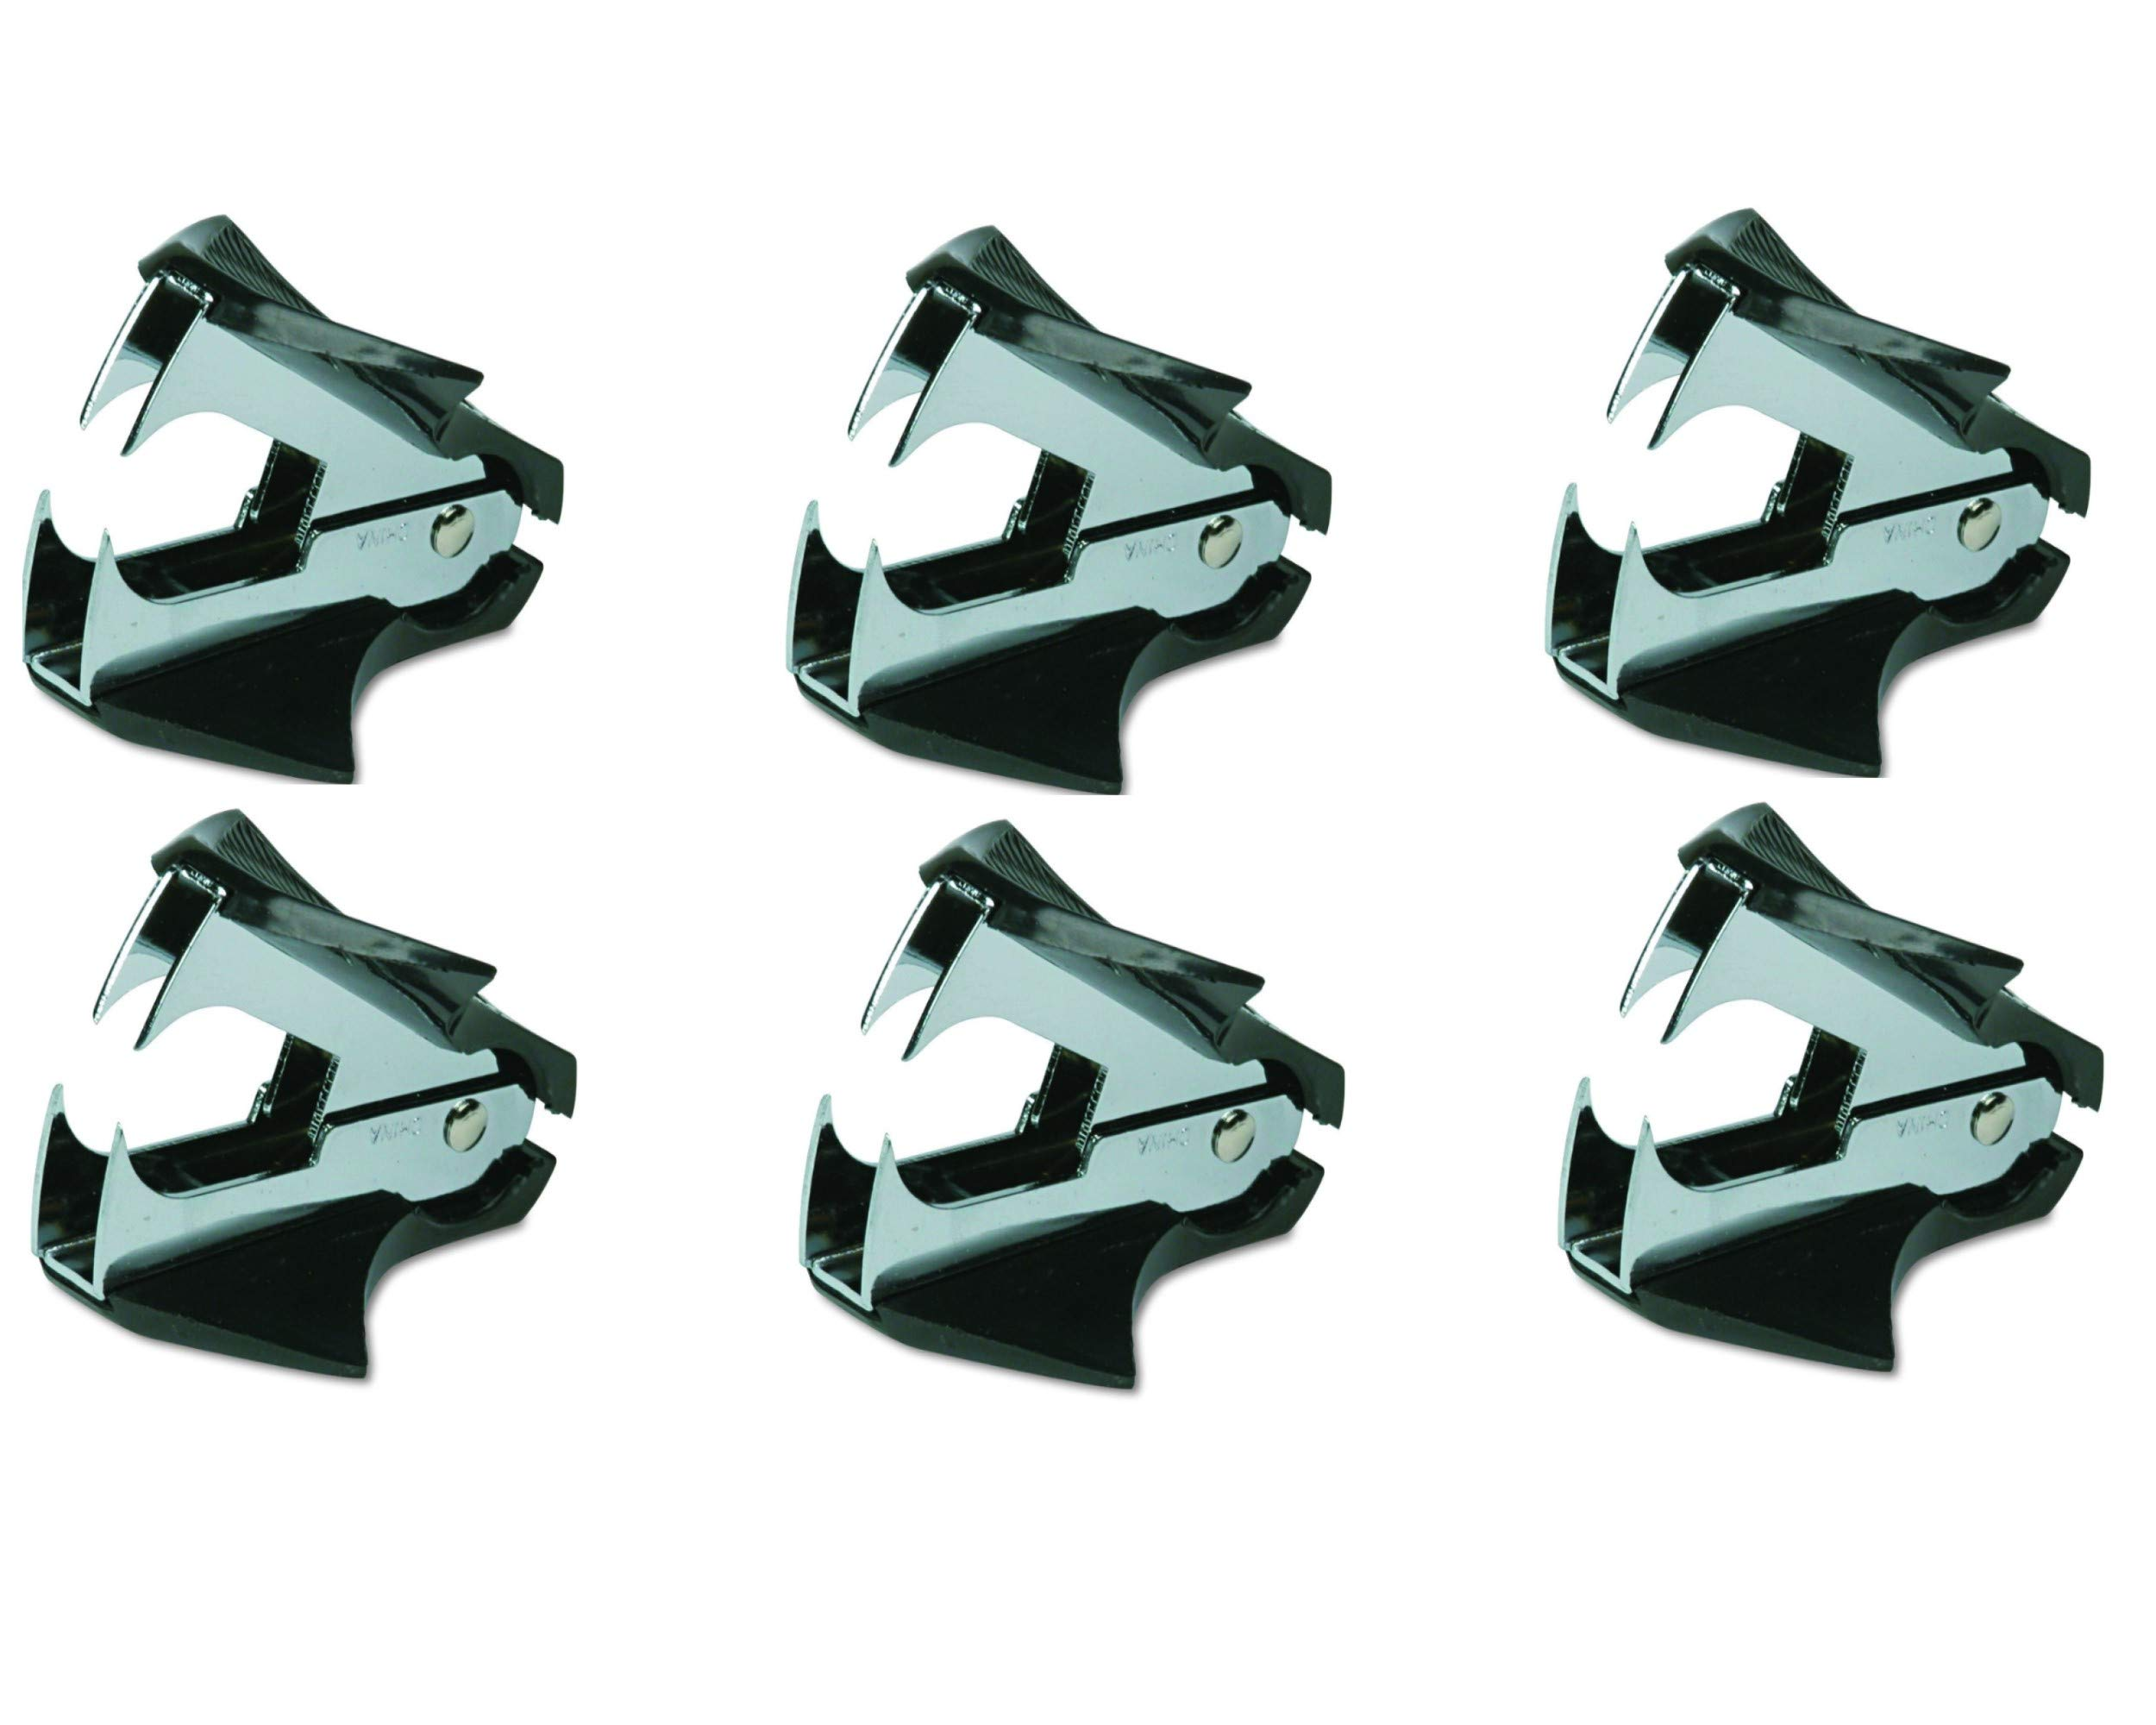 Swingline Staple Remover, Deluxe, Extra Wide, Steel Jaws, Black (38101) - 6 Pack by Swingline